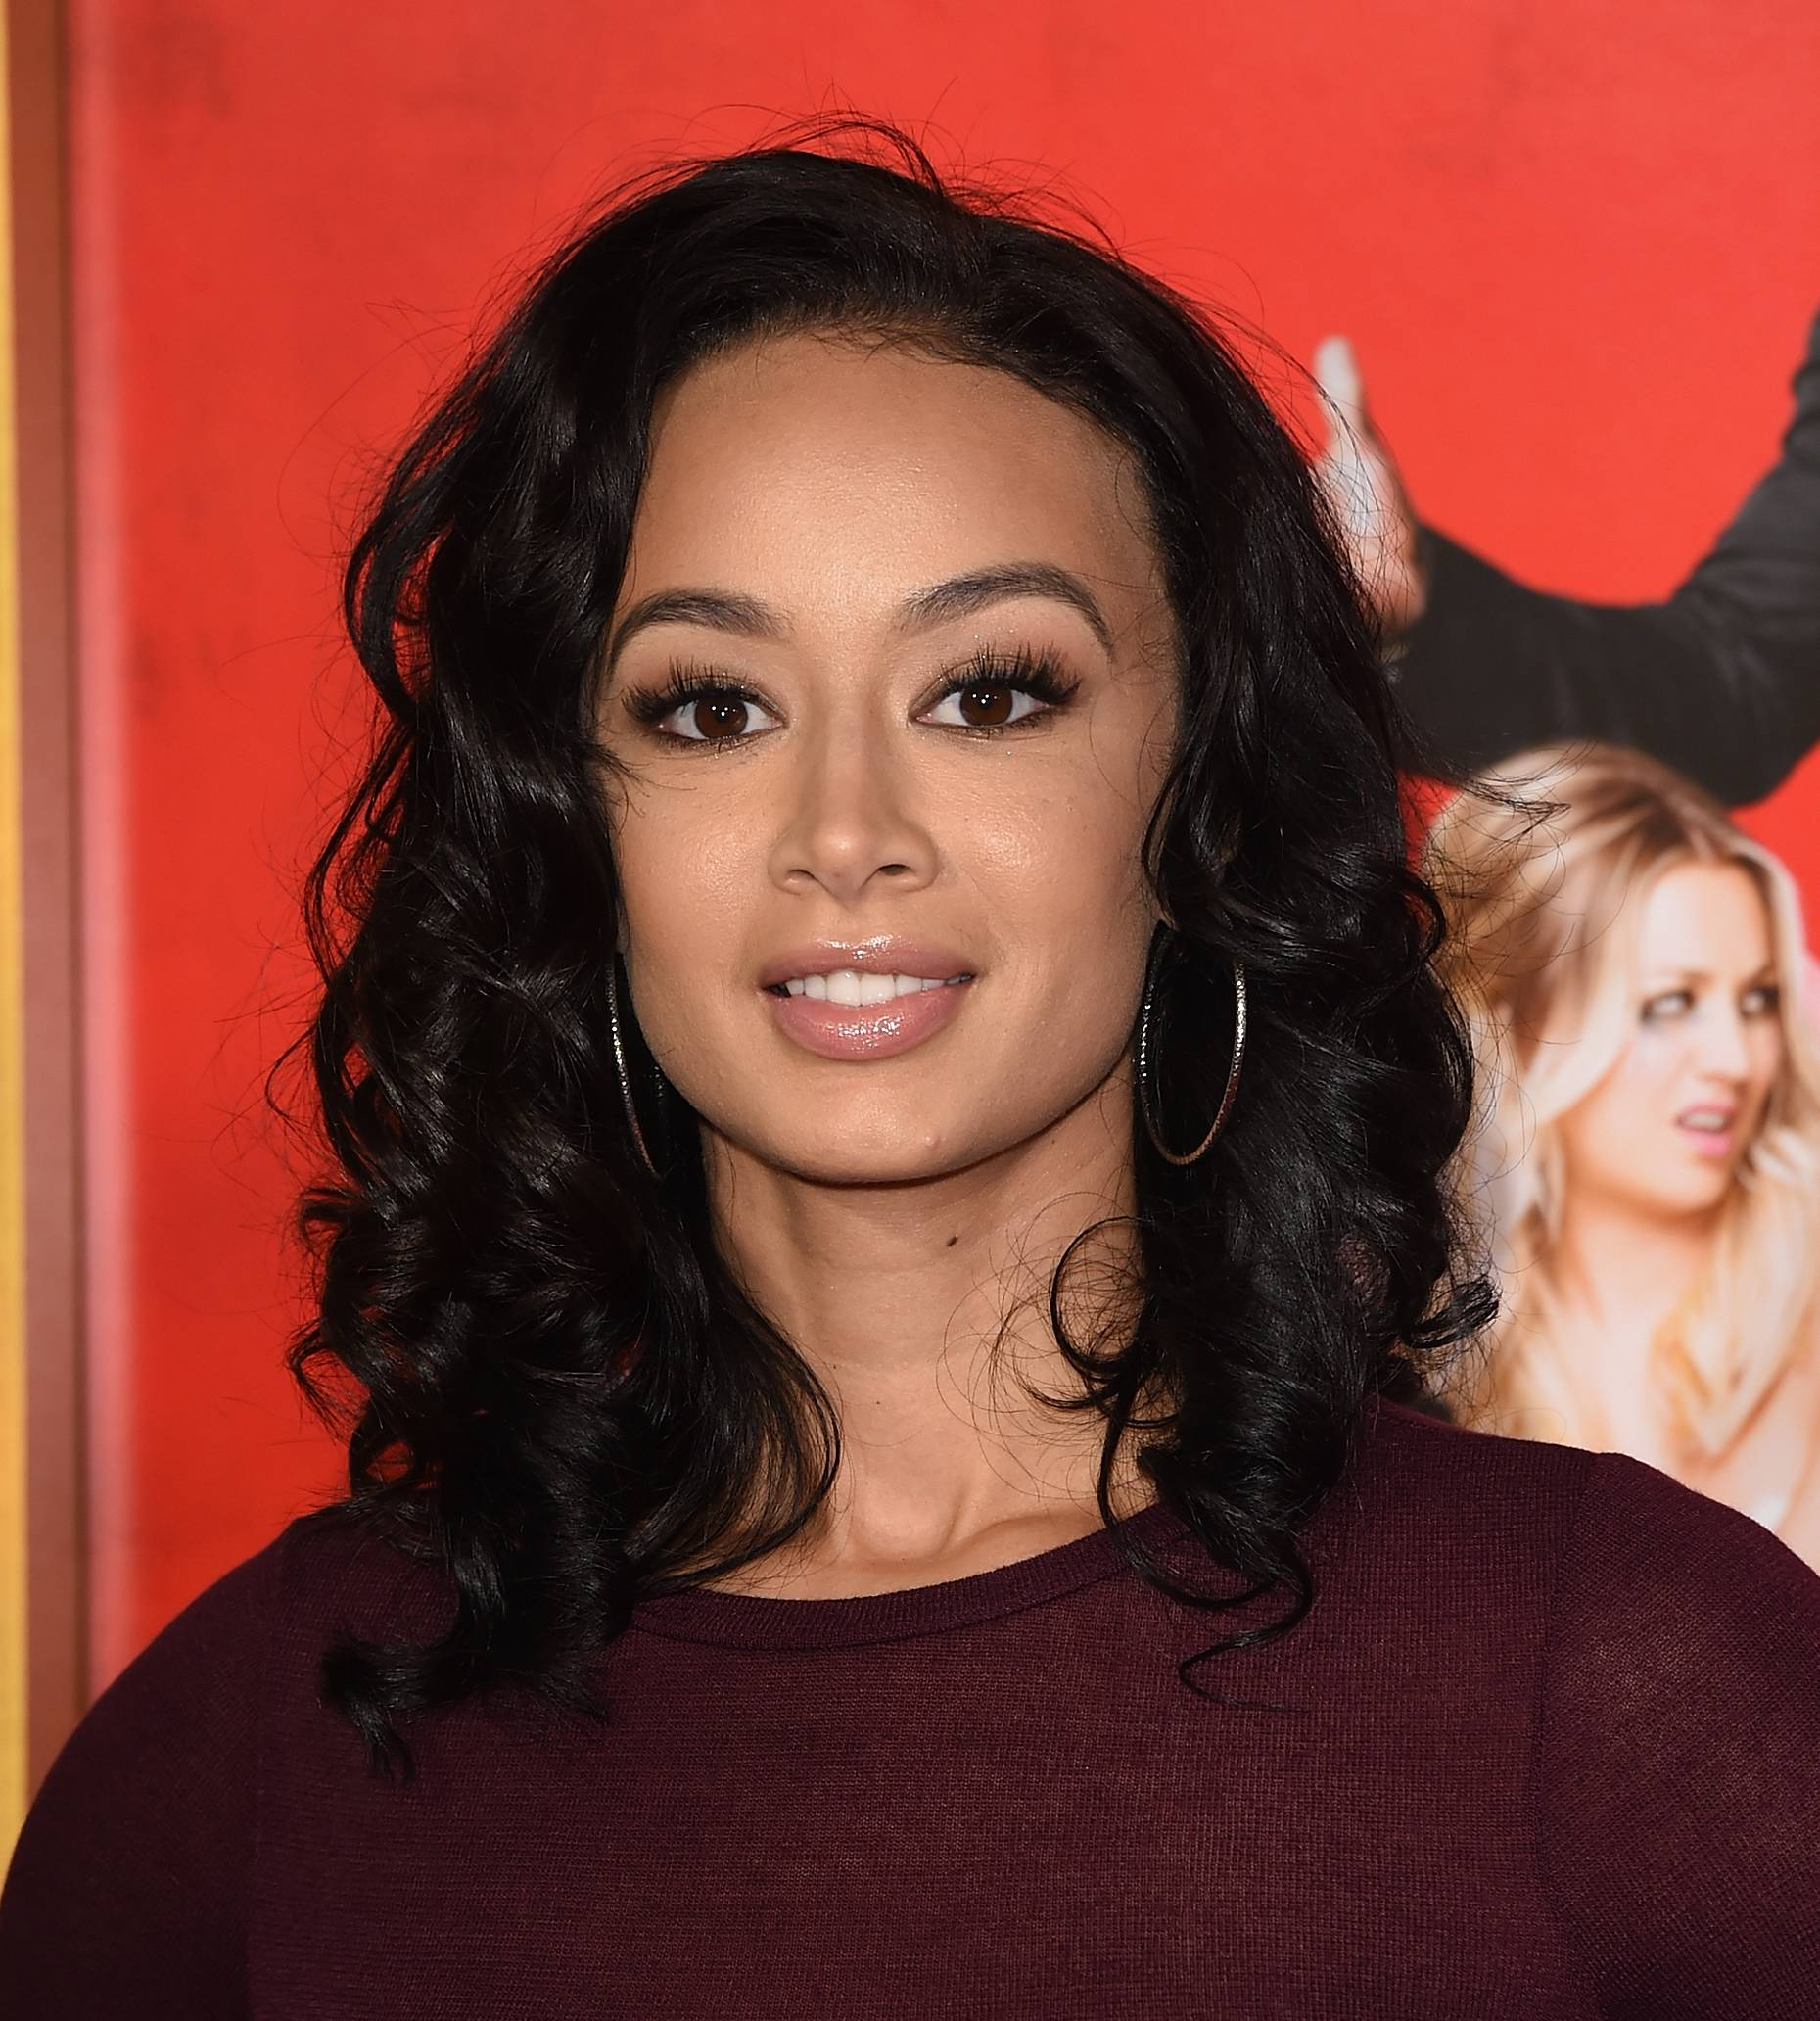 Draya Michele's Big Birthday - Draya Michele also celebrated a big birthday over the weekend. The Basketball Wives star hit the big 3-0 and celebrated at a star-studded birthday bash.   (Photo: Jason Merritt/Getty Images)